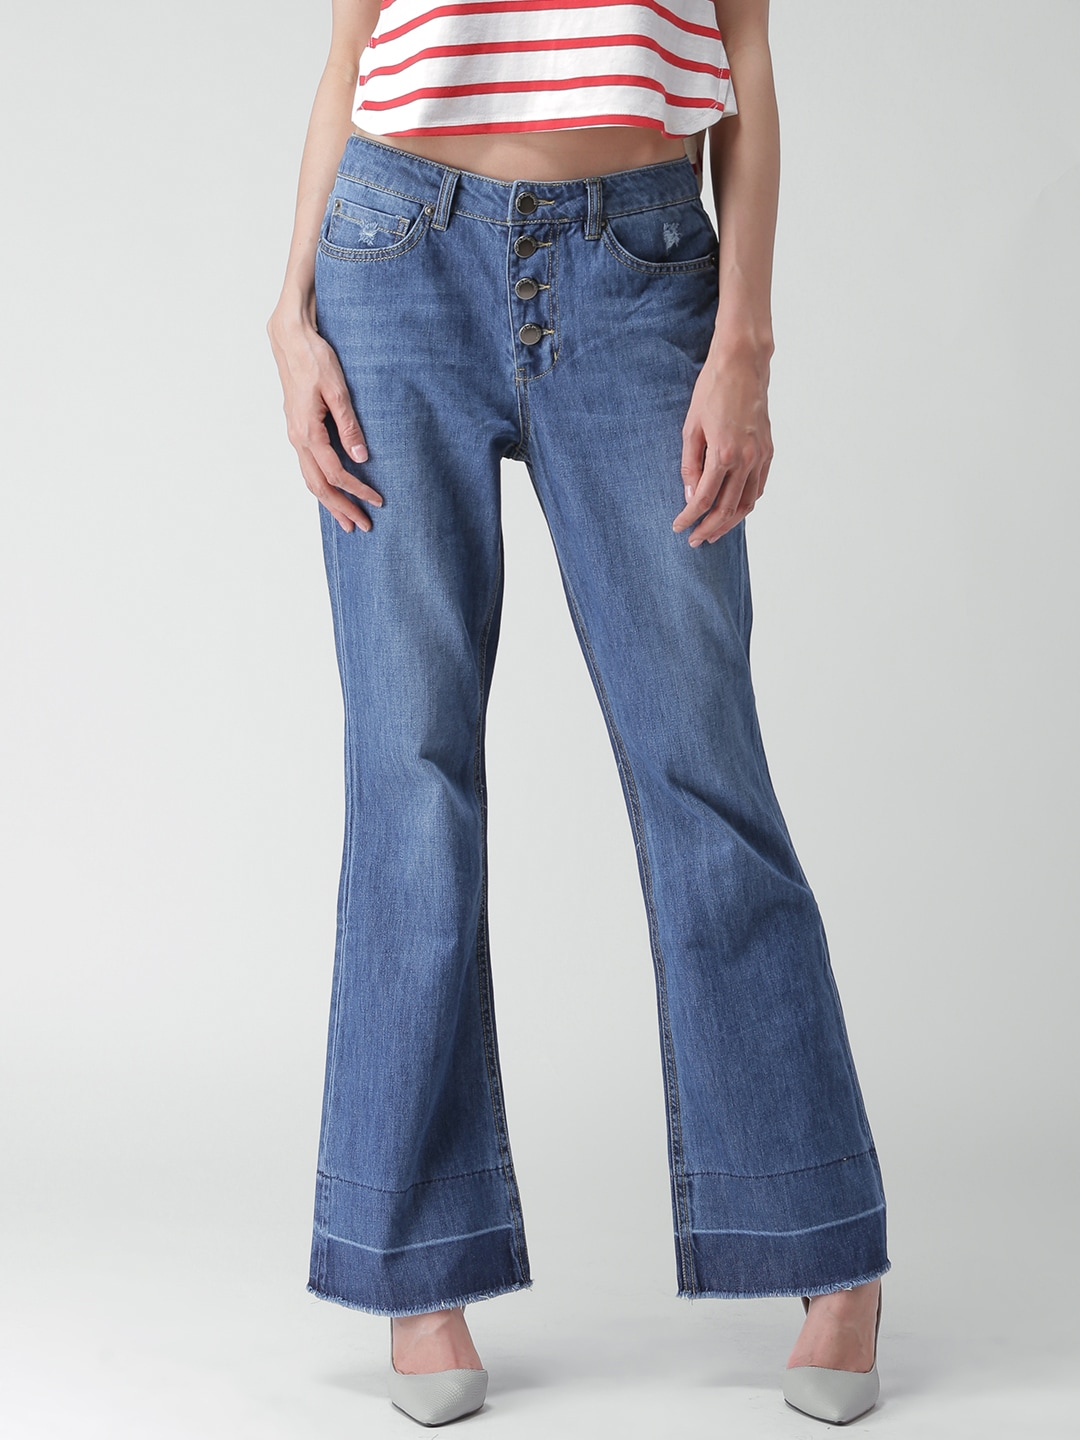 Buy Bootcut Jeans Online India - Jeans Am